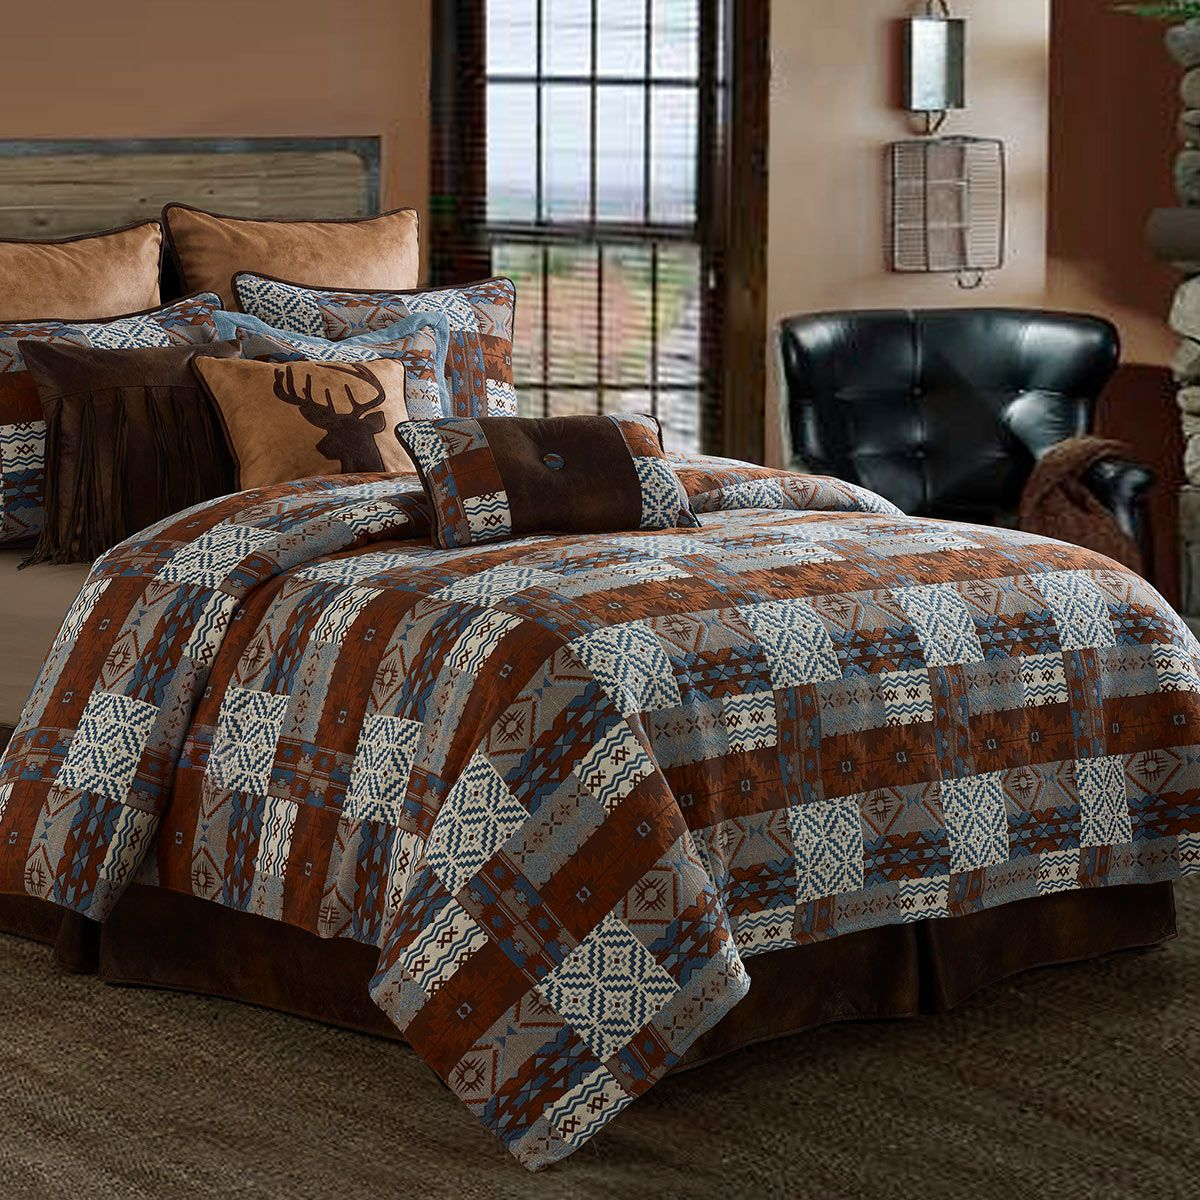 Old Dominion Patchwork Duvet - Queen